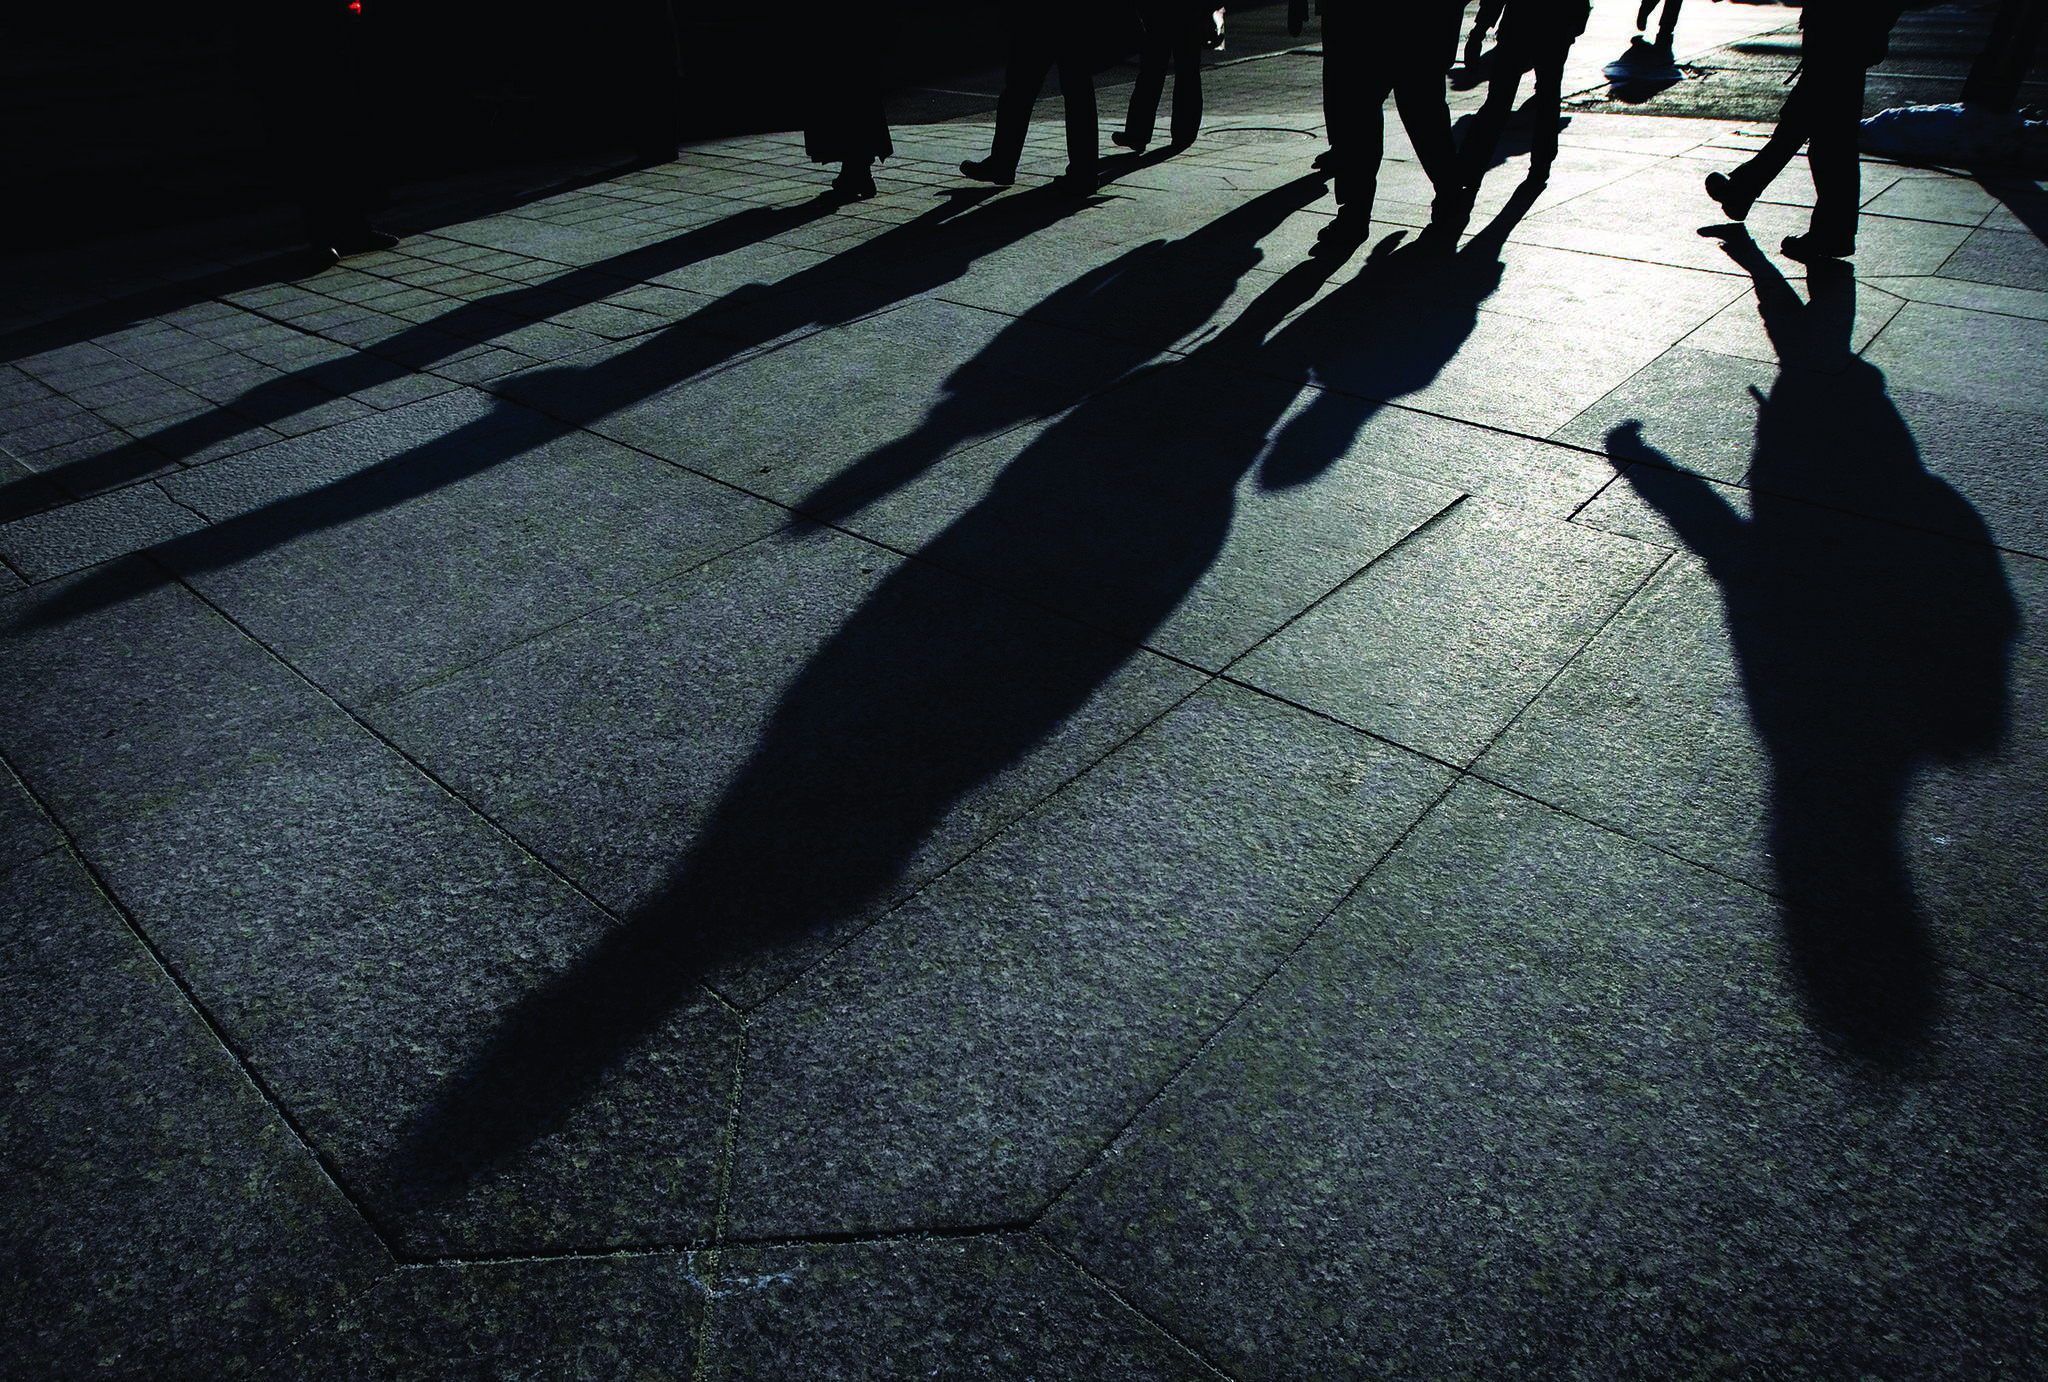 People cast their shadows on the sidewalks as they make their way home after work in downtown Toronto on Tuesday, Feb. 24, 2009. THE CANADIAN PRESS/Nathan Denette